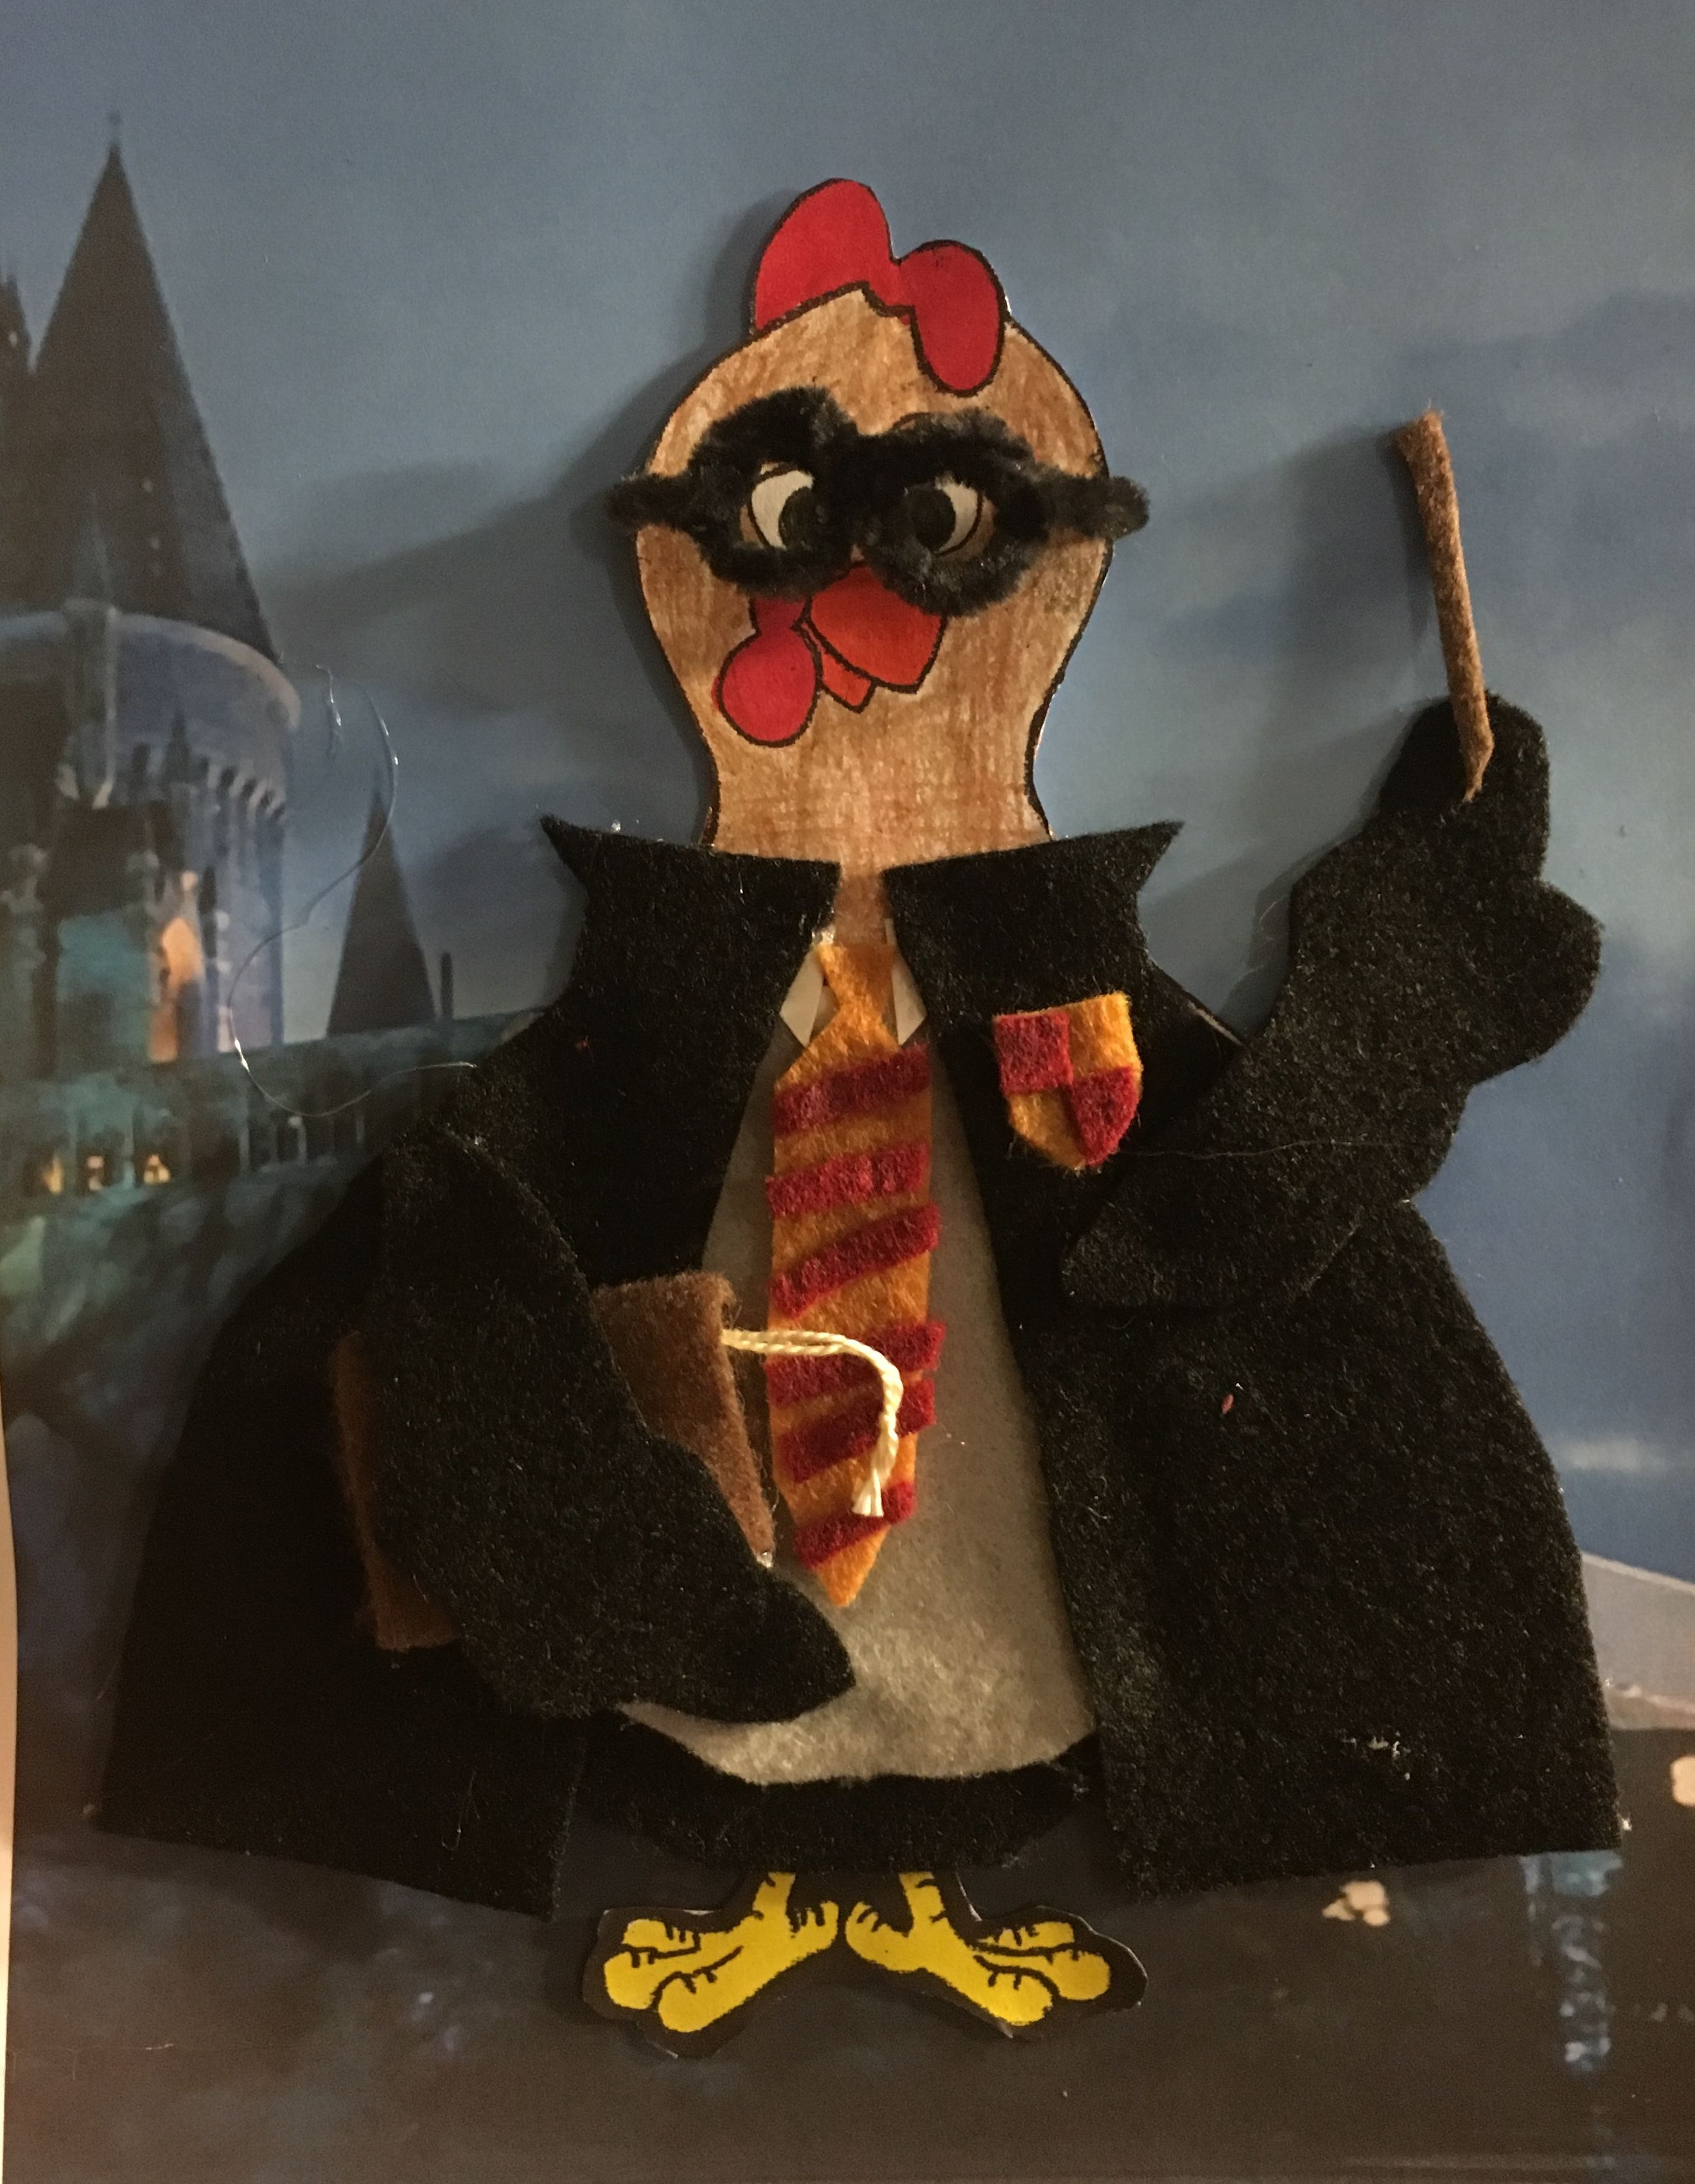 How To Disguise A Turkey Harrypotter